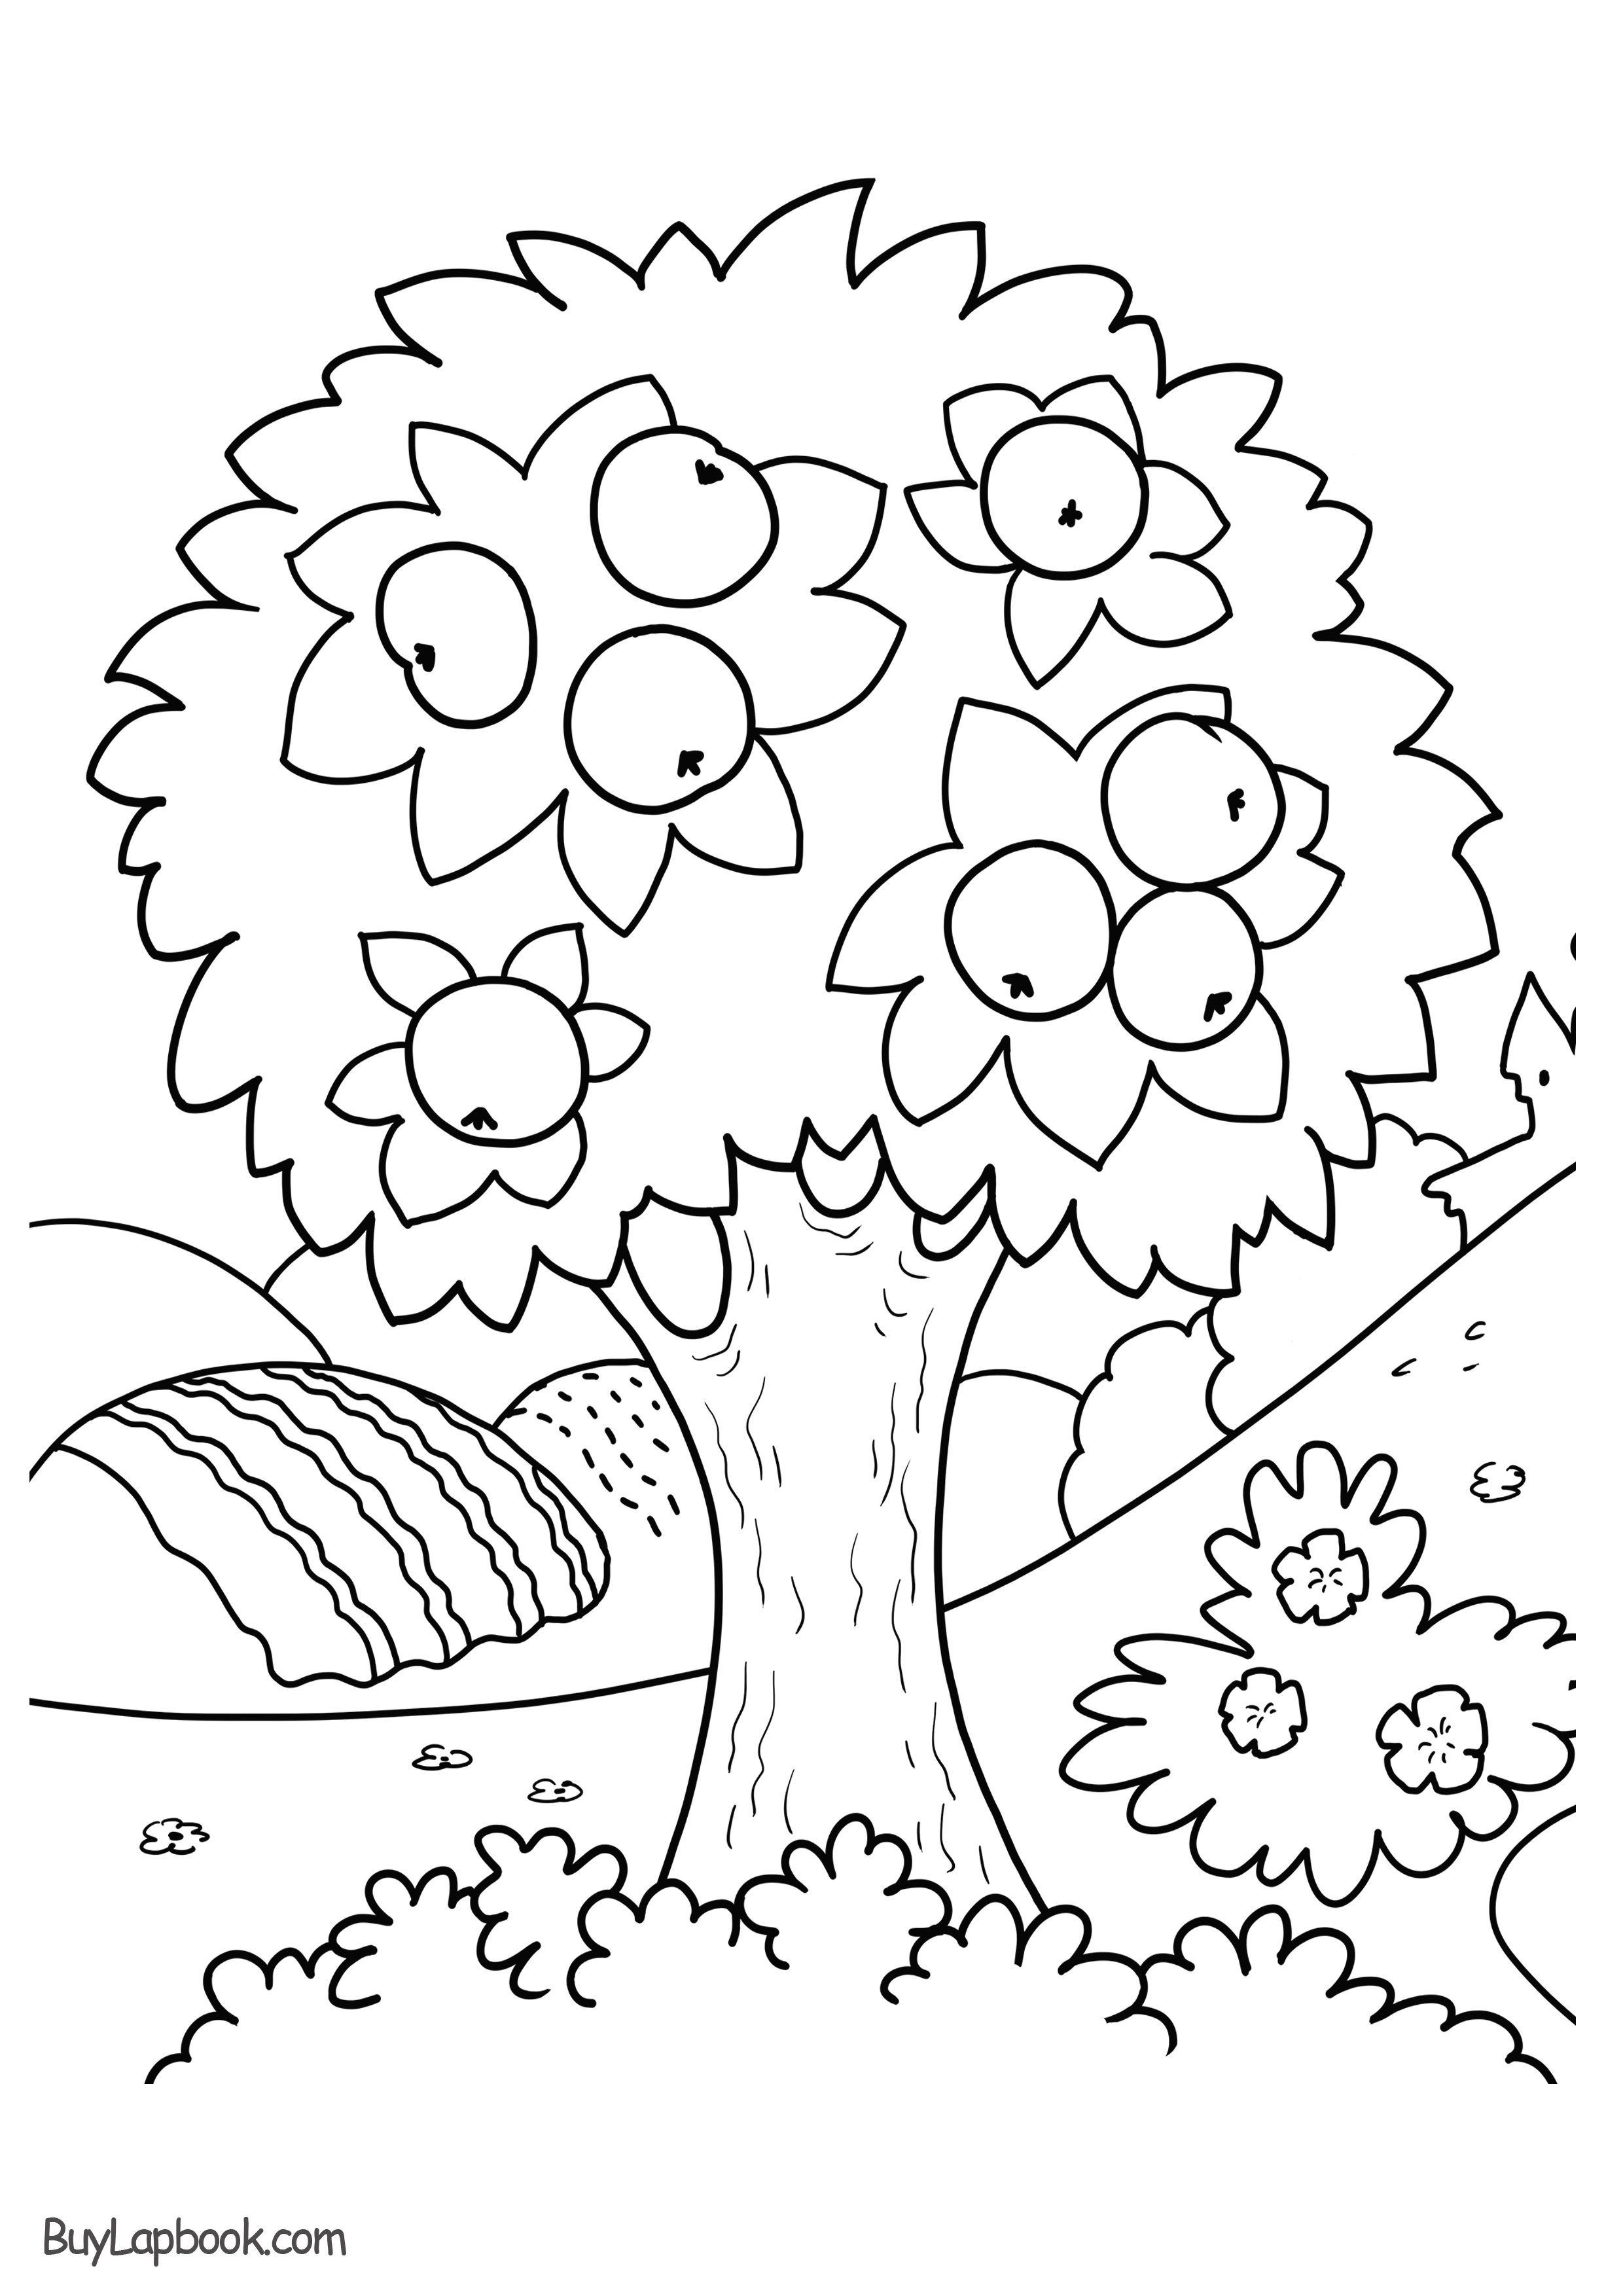 coloring picture tree free printable tree coloring pages for kids cool2bkids picture tree coloring 1 1